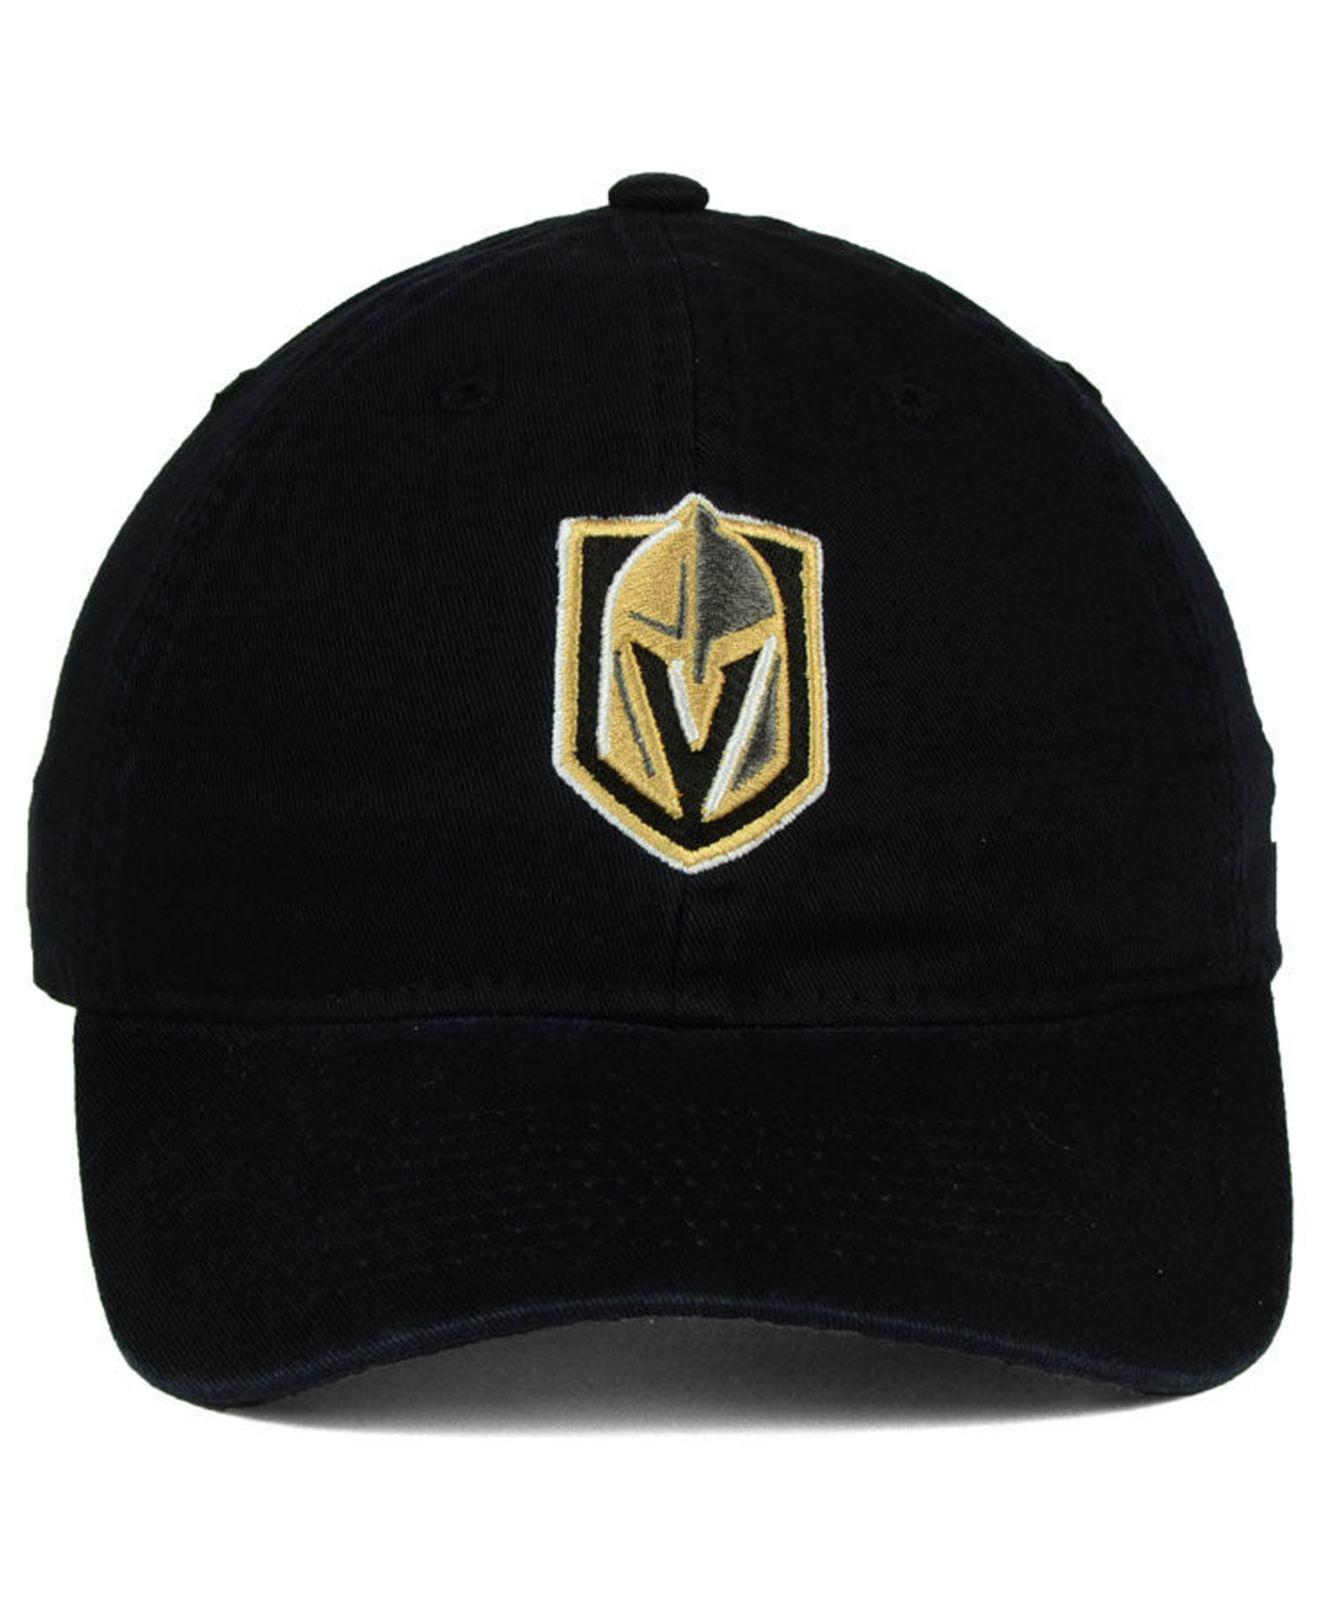 5a1eb3dff04075 ... reduced lyst adidas vegas golden knights slouch adjustable cap in black  for men 91f3c 5e17b